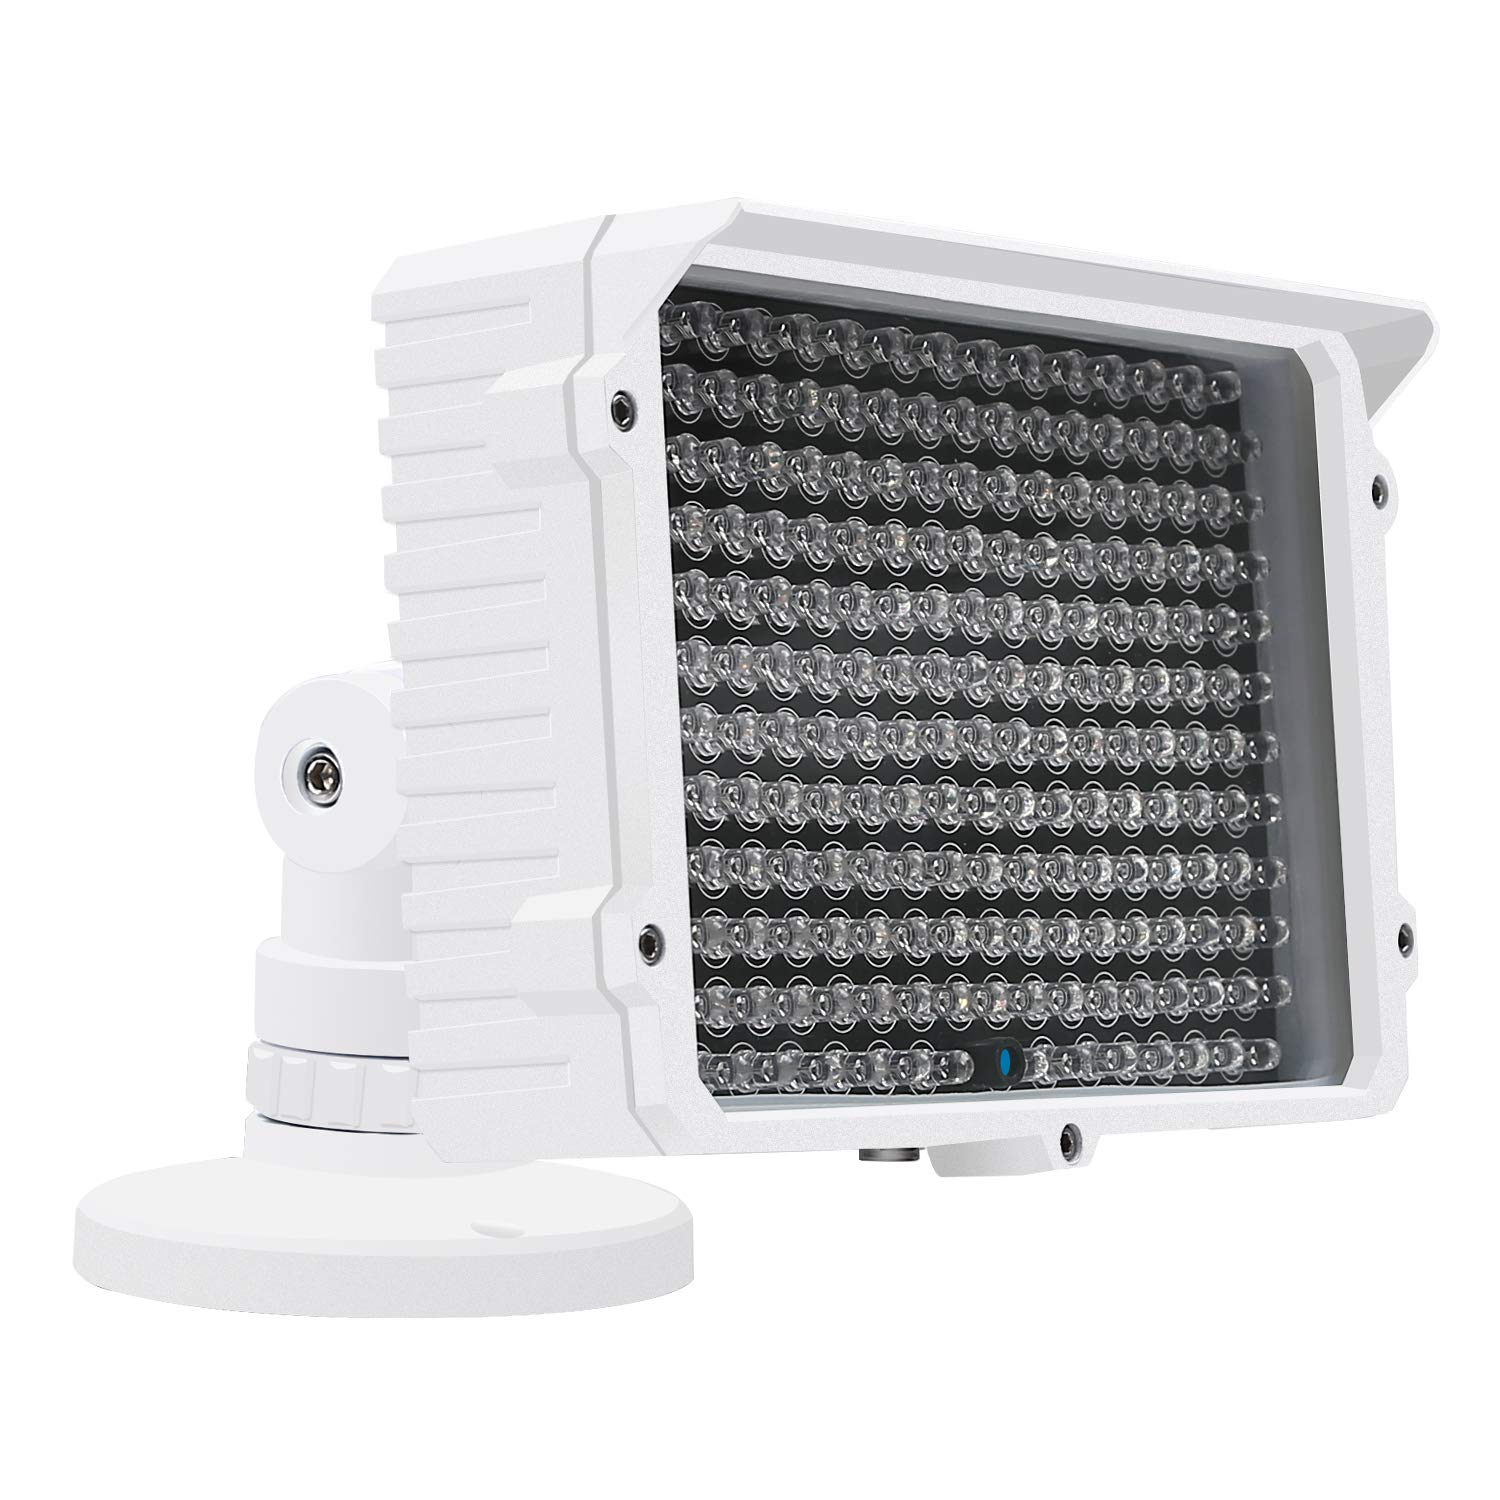 CMVision IR130-830NM - 198 LED Indoor/Outdoor Long Range 150 feet IR Illuminator with Free 3A 12VDC Power Adaptor (Special for photobiomodulation, Light Therapy Application) by CMVision